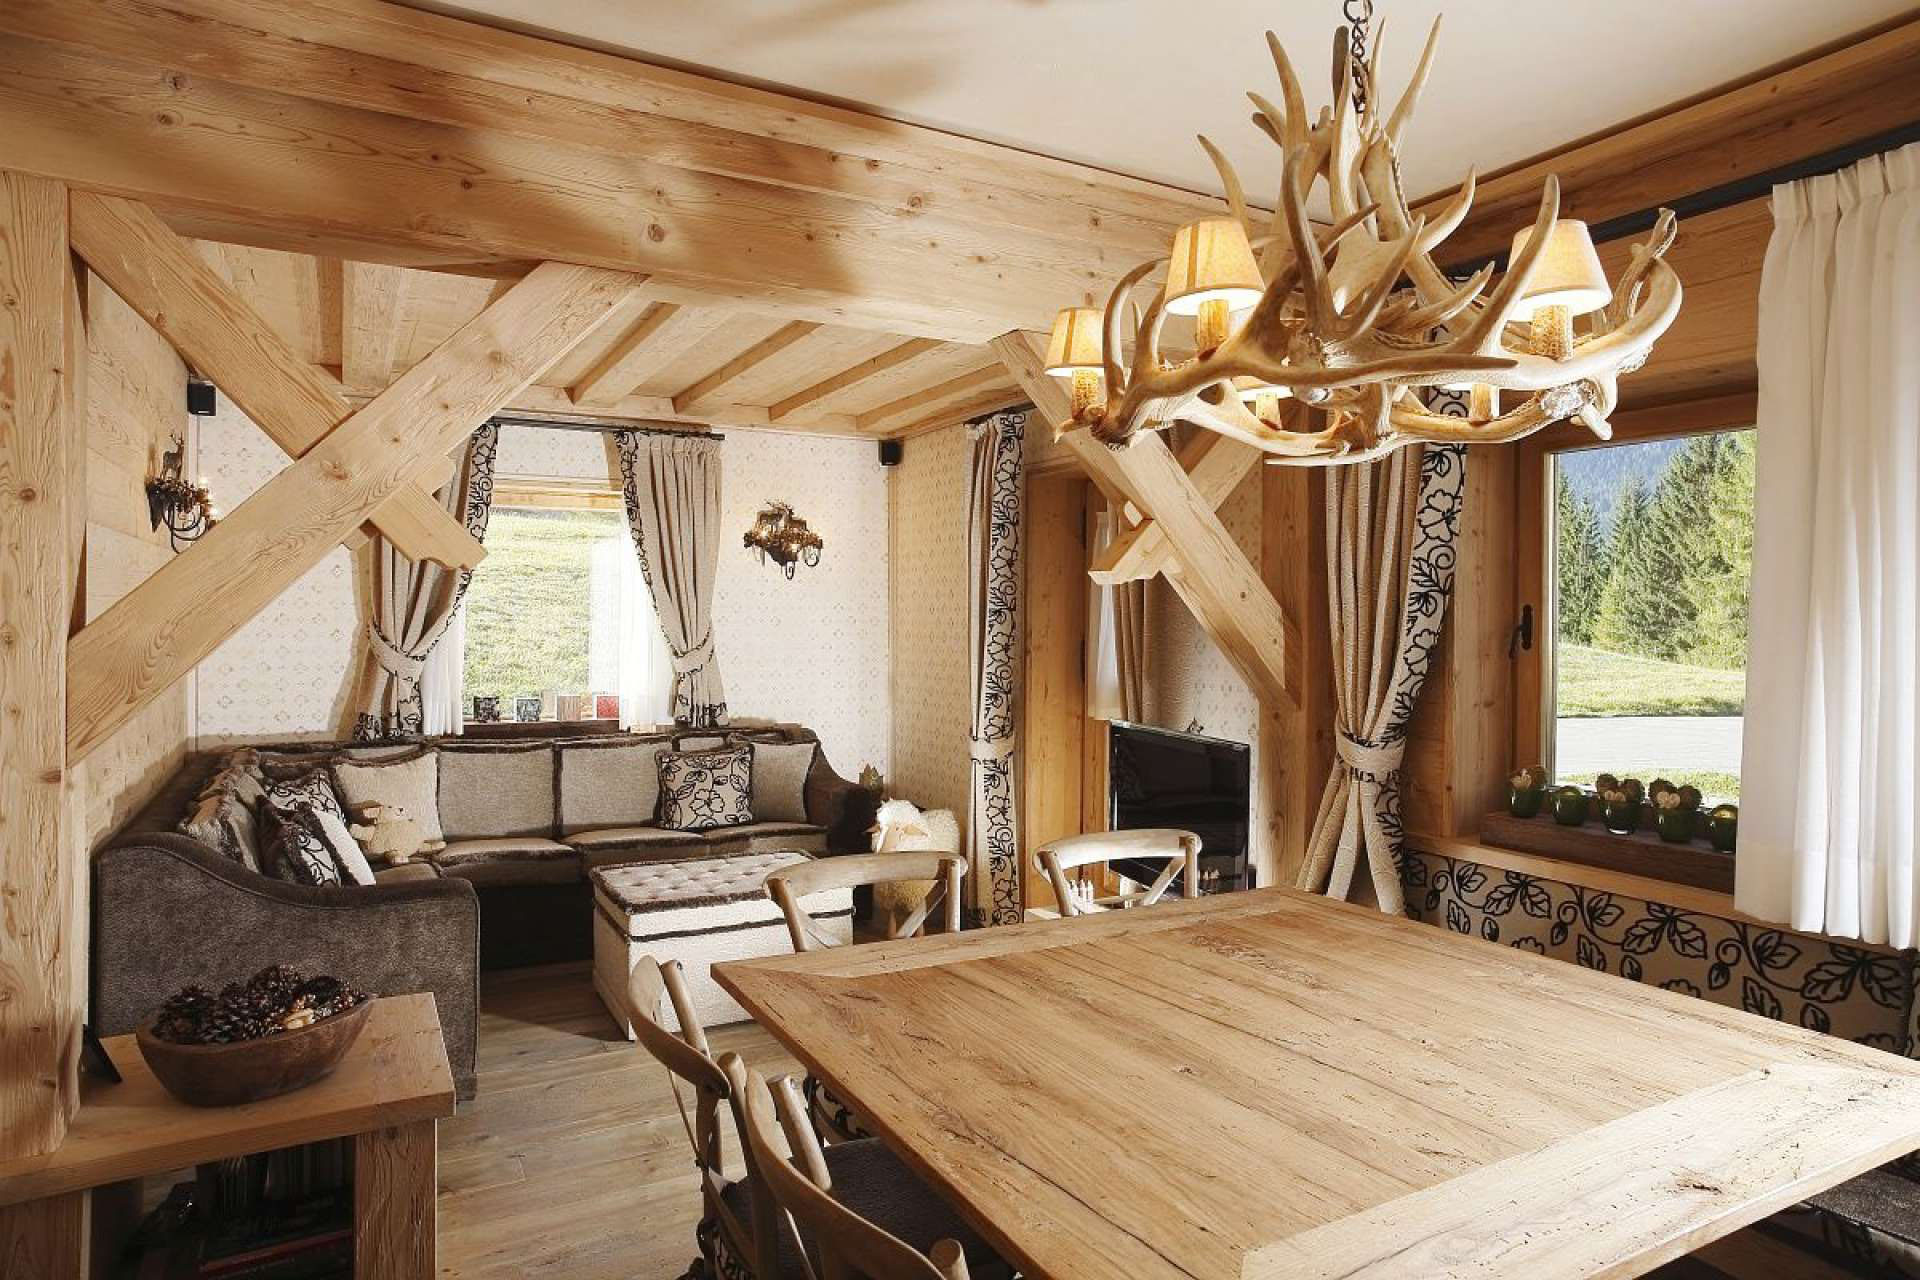 Rustic alpine apartment with natural wood elements for Accessori per arredare casa